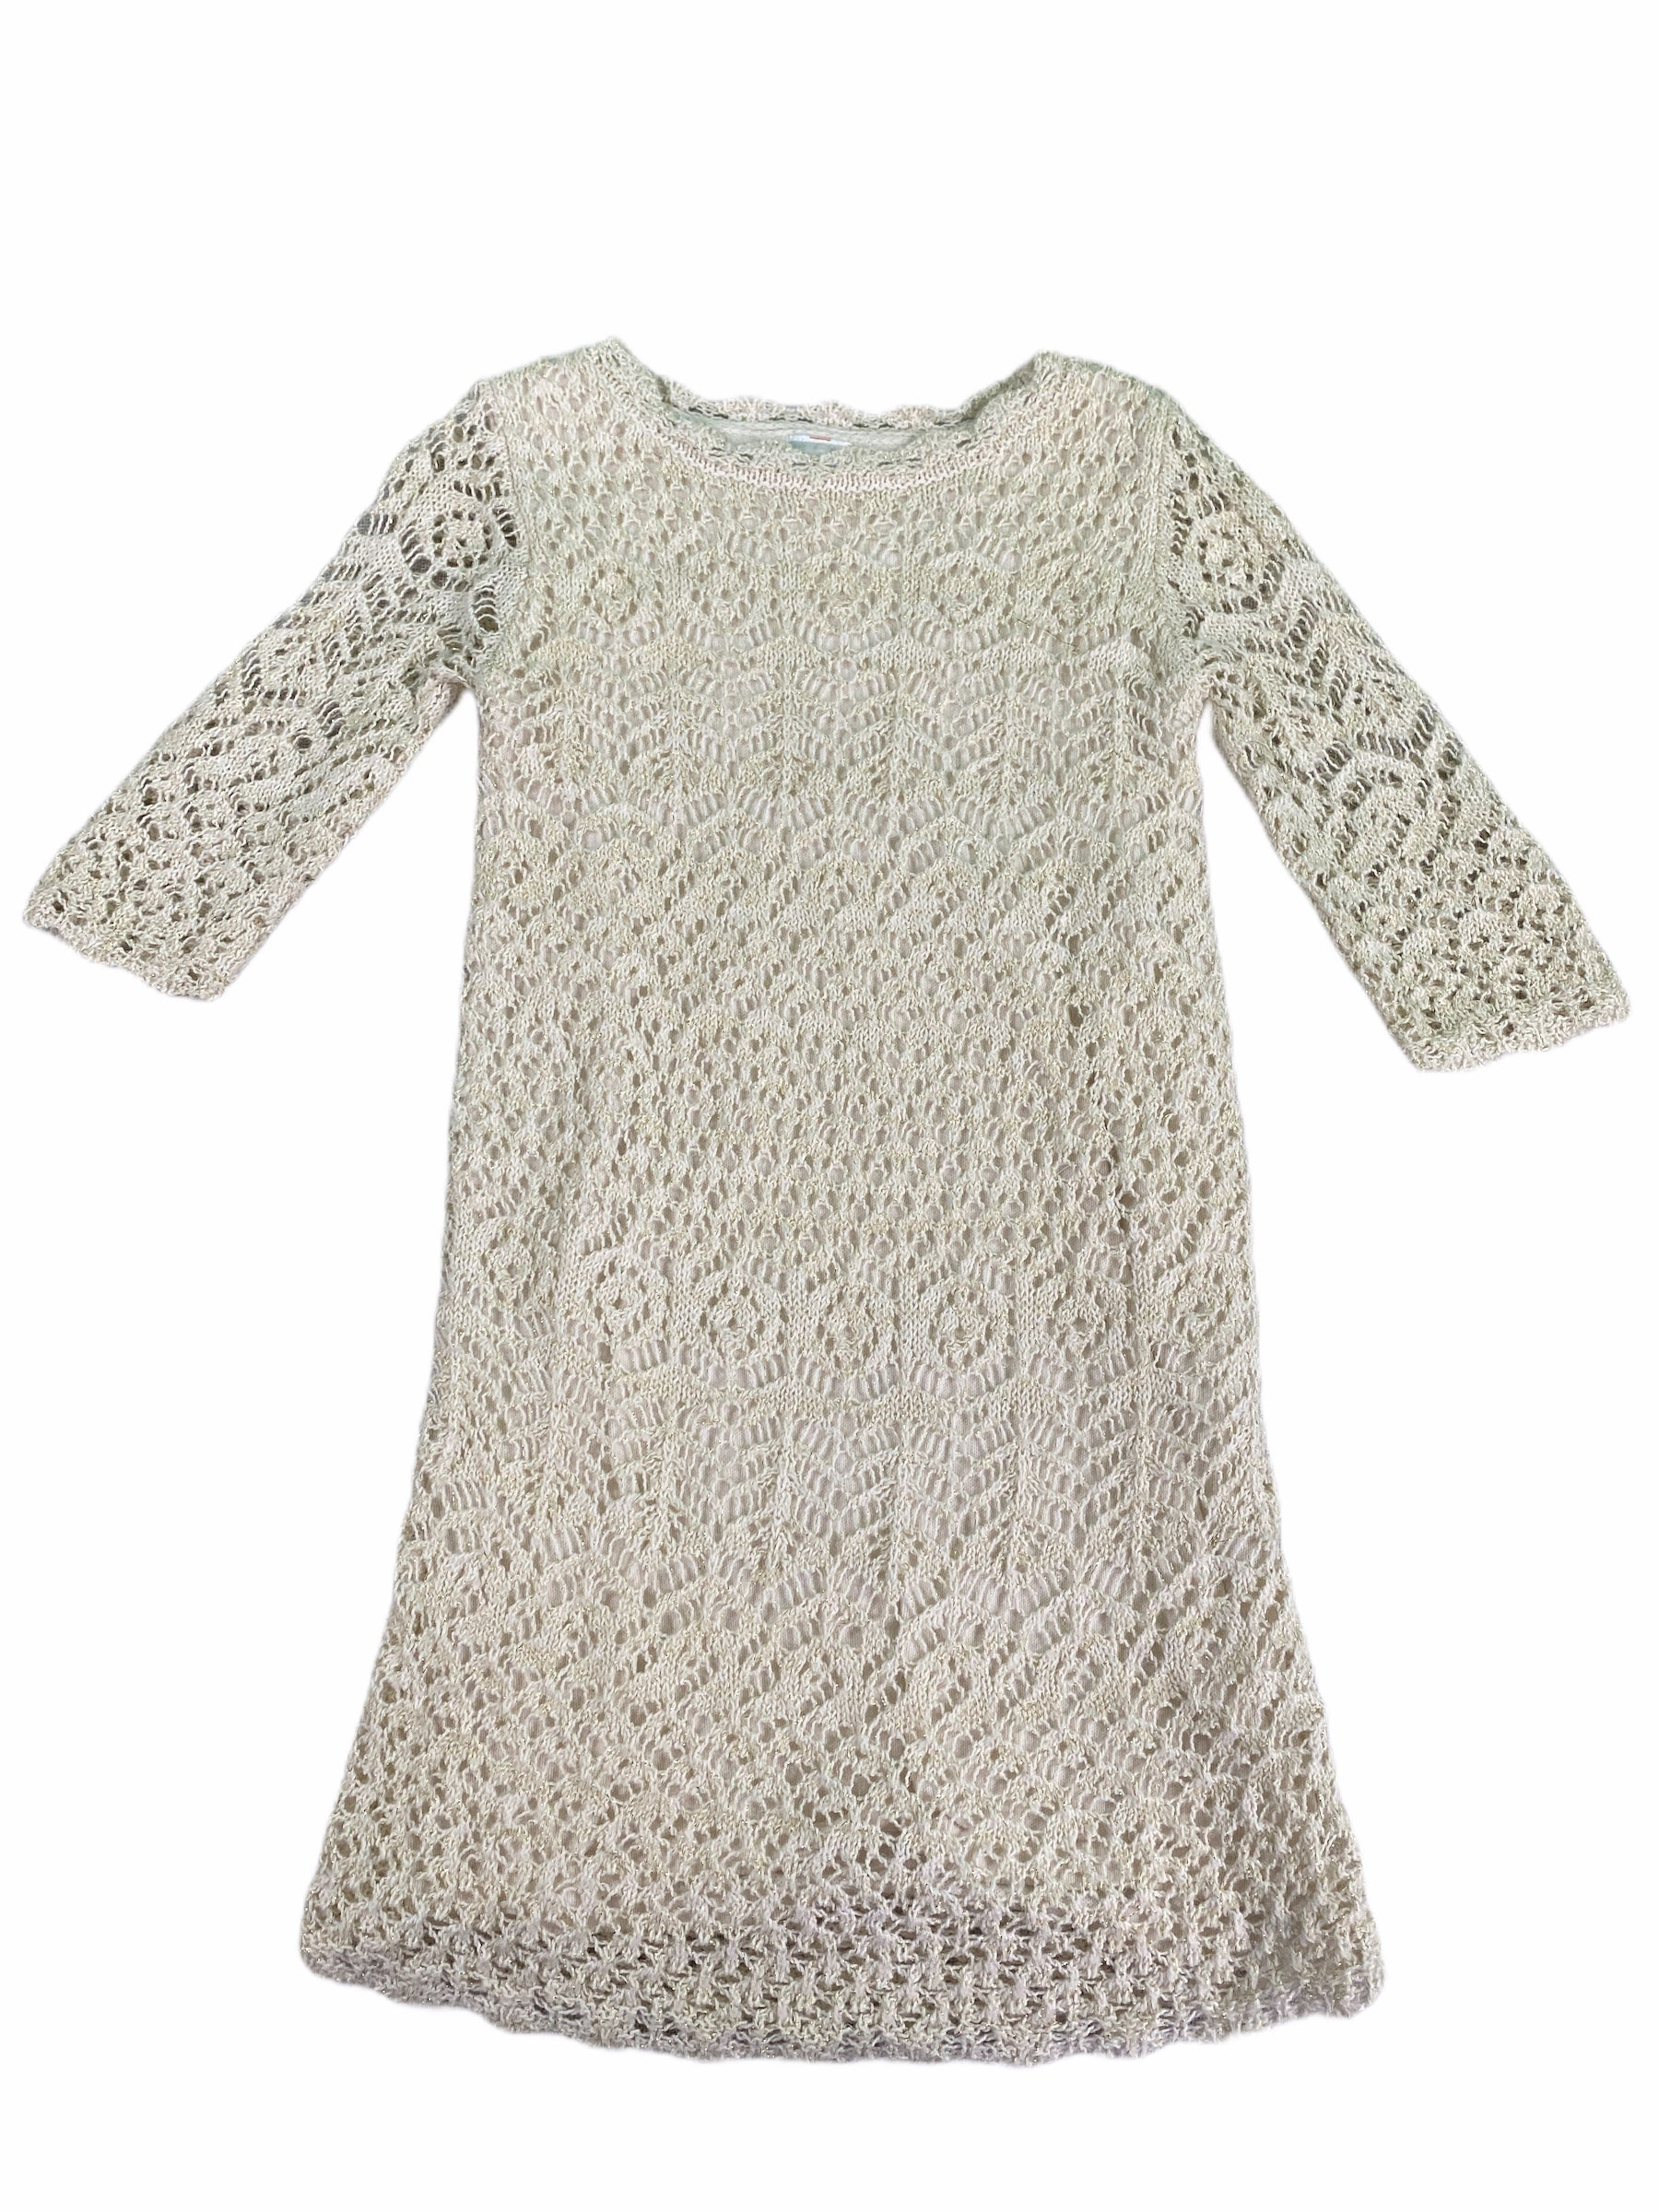 Cat & Jack Cream & Gold Knit Dress (4/5 Girls)